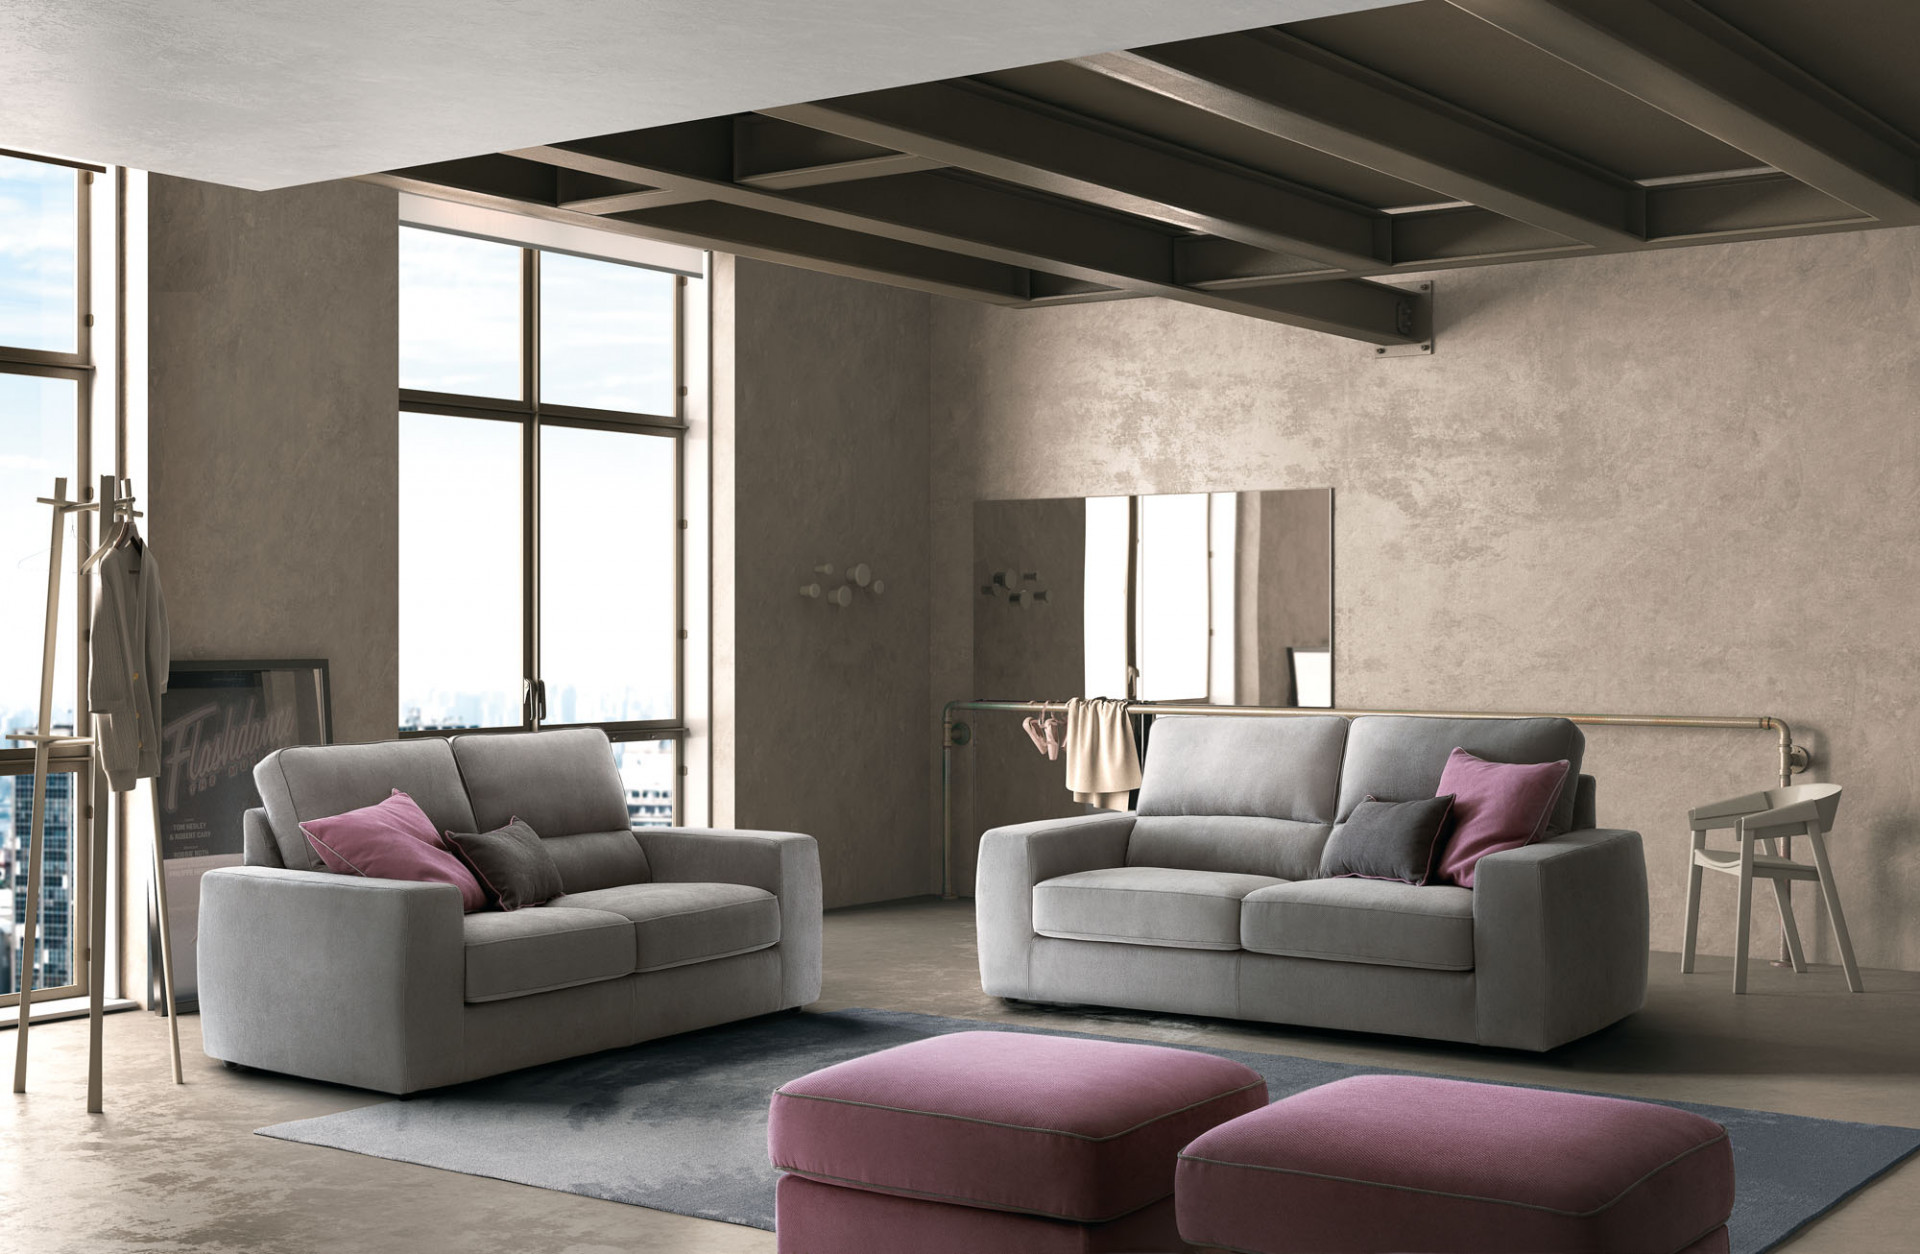 Sofas In Fabric Tommy LeComfort